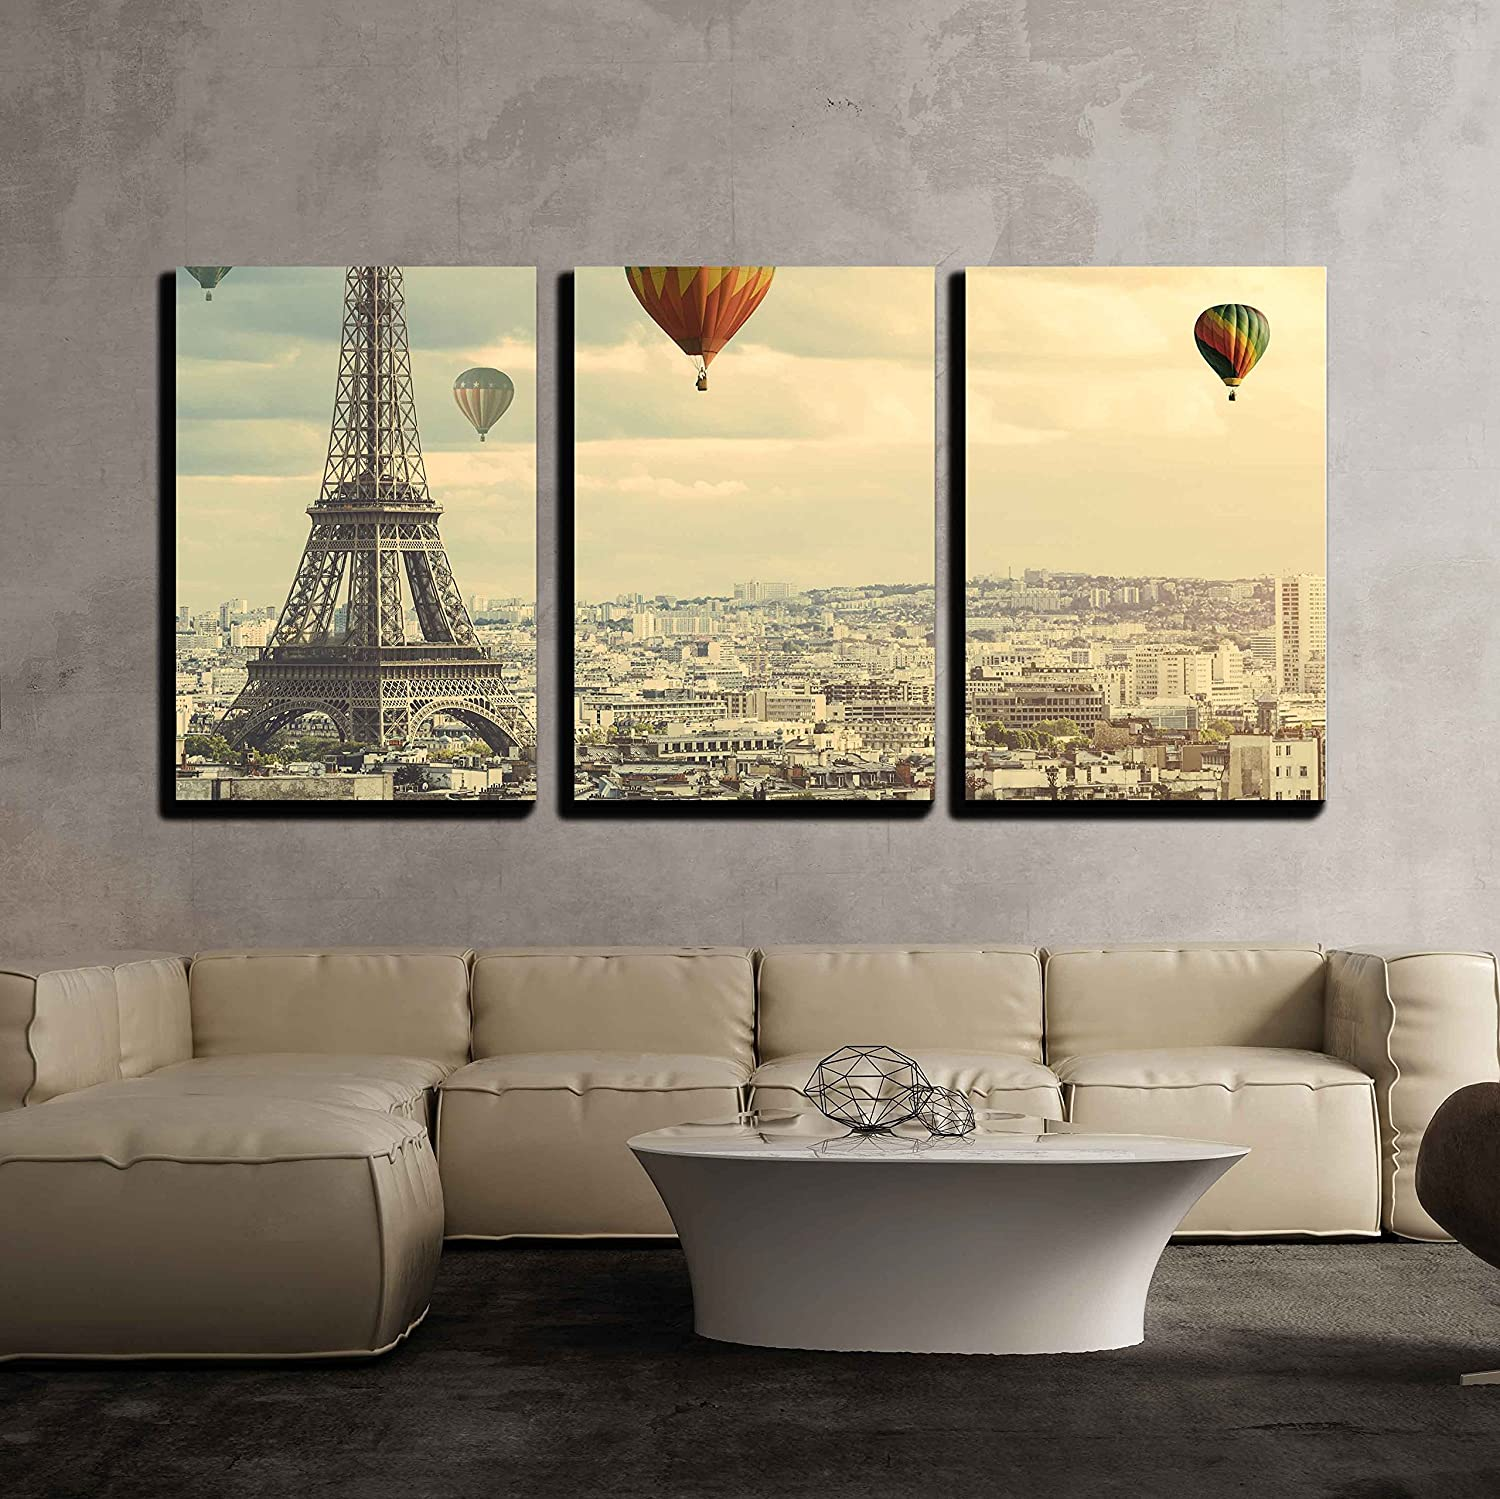 """wall26 - 3 Piece Canvas Wall Art - Colorful Hot Balloons Flying Above The Eiffel Tower in Paris - Modern Home Decor Stretched and Framed Ready to Hang - 24""""x36""""x3 Panels"""